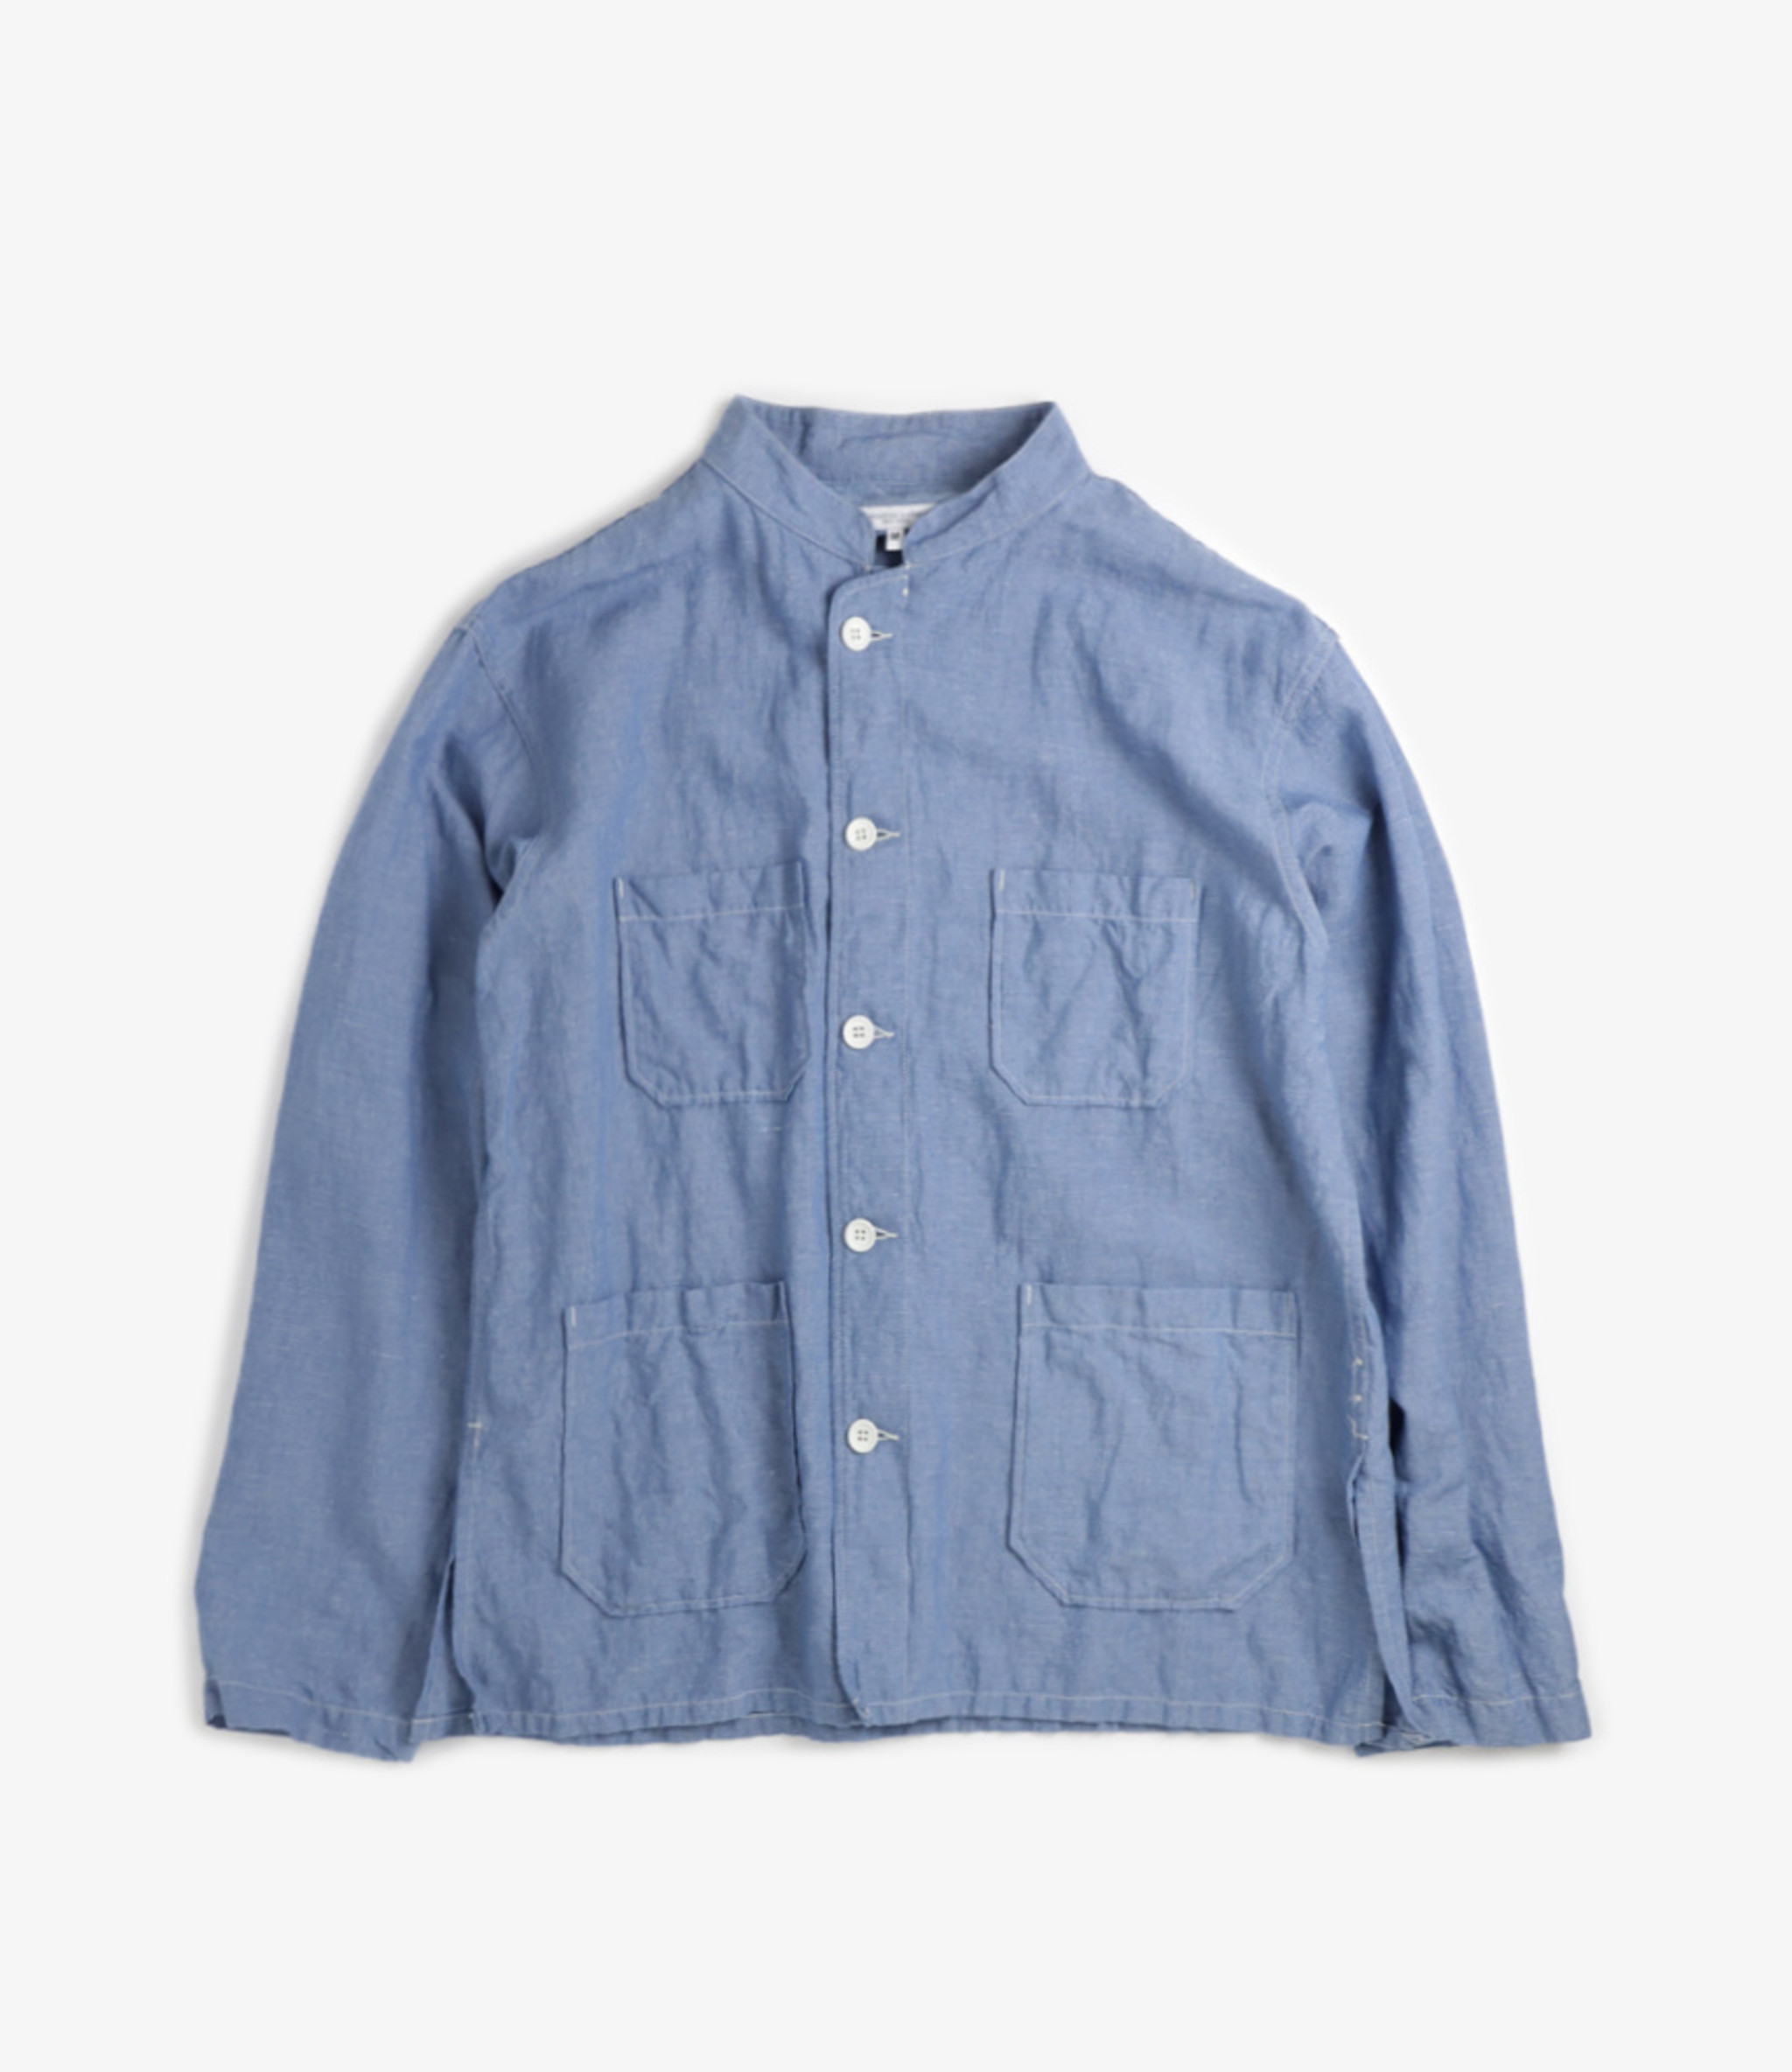 Engineered Garments Dayton Shirt Jacket (M) engineered garments dayton shirt